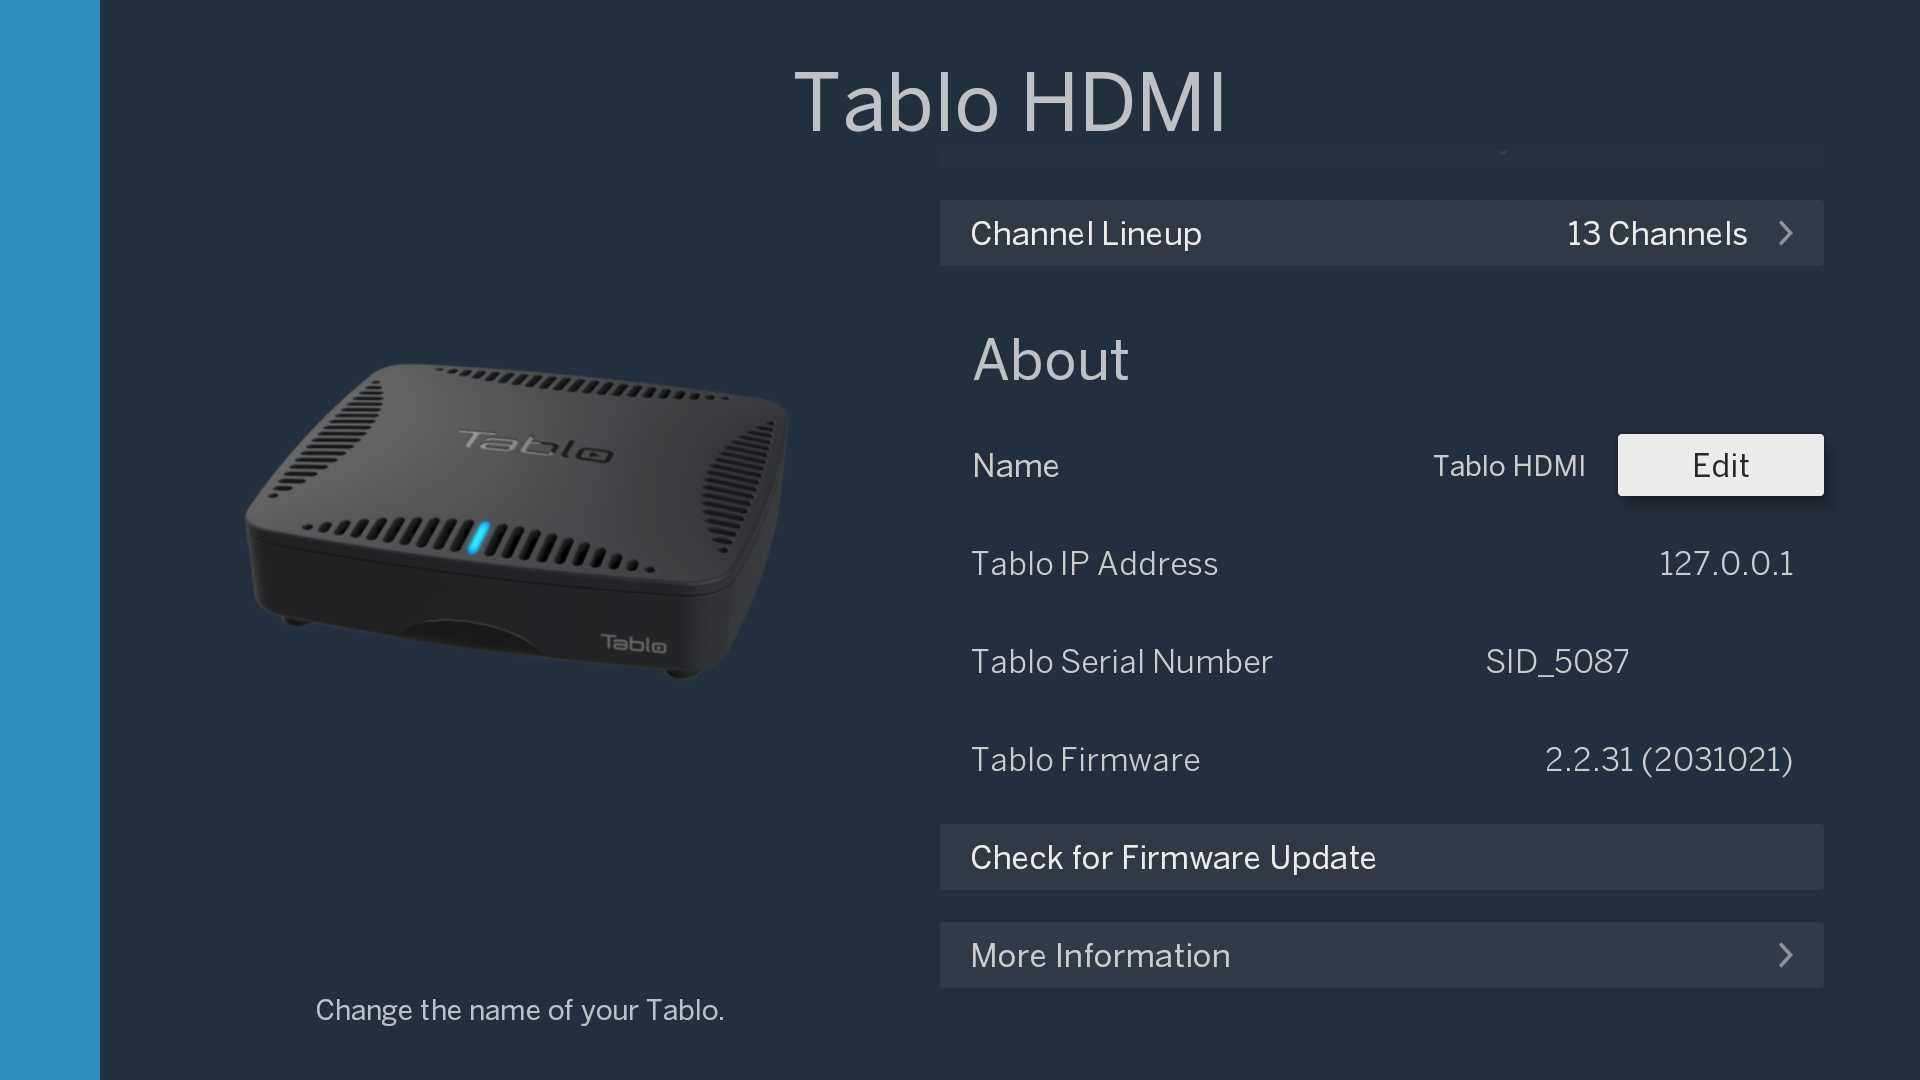 tablo_hdmi_settings_about_new.png